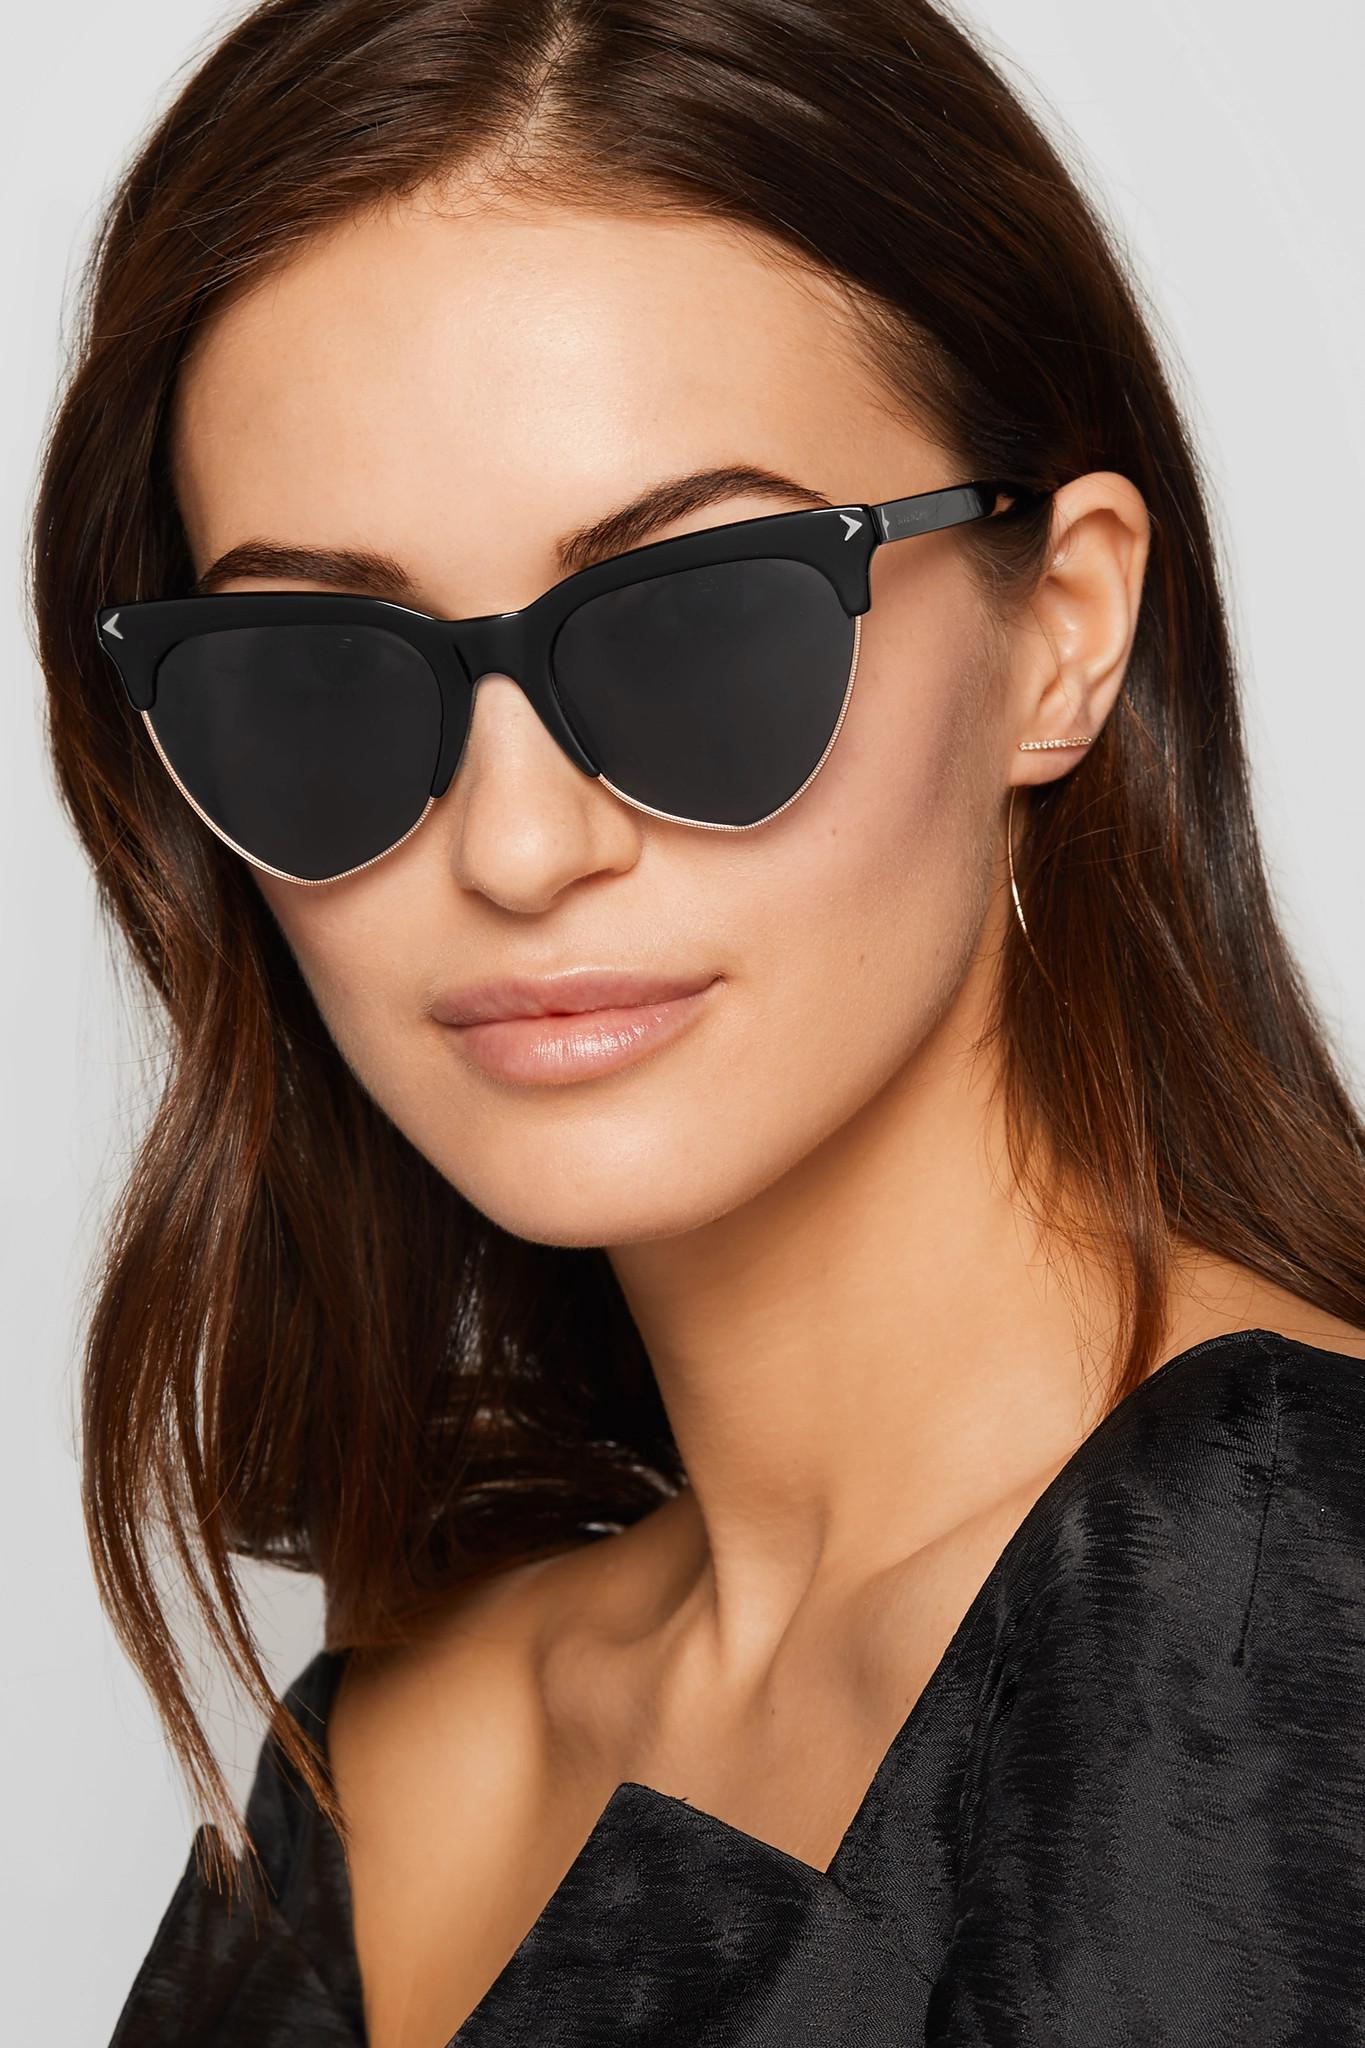 a586640f94bde Givenchy Cat-eye Acetate And Rose Gold-tone Sunglasses in Black - Lyst